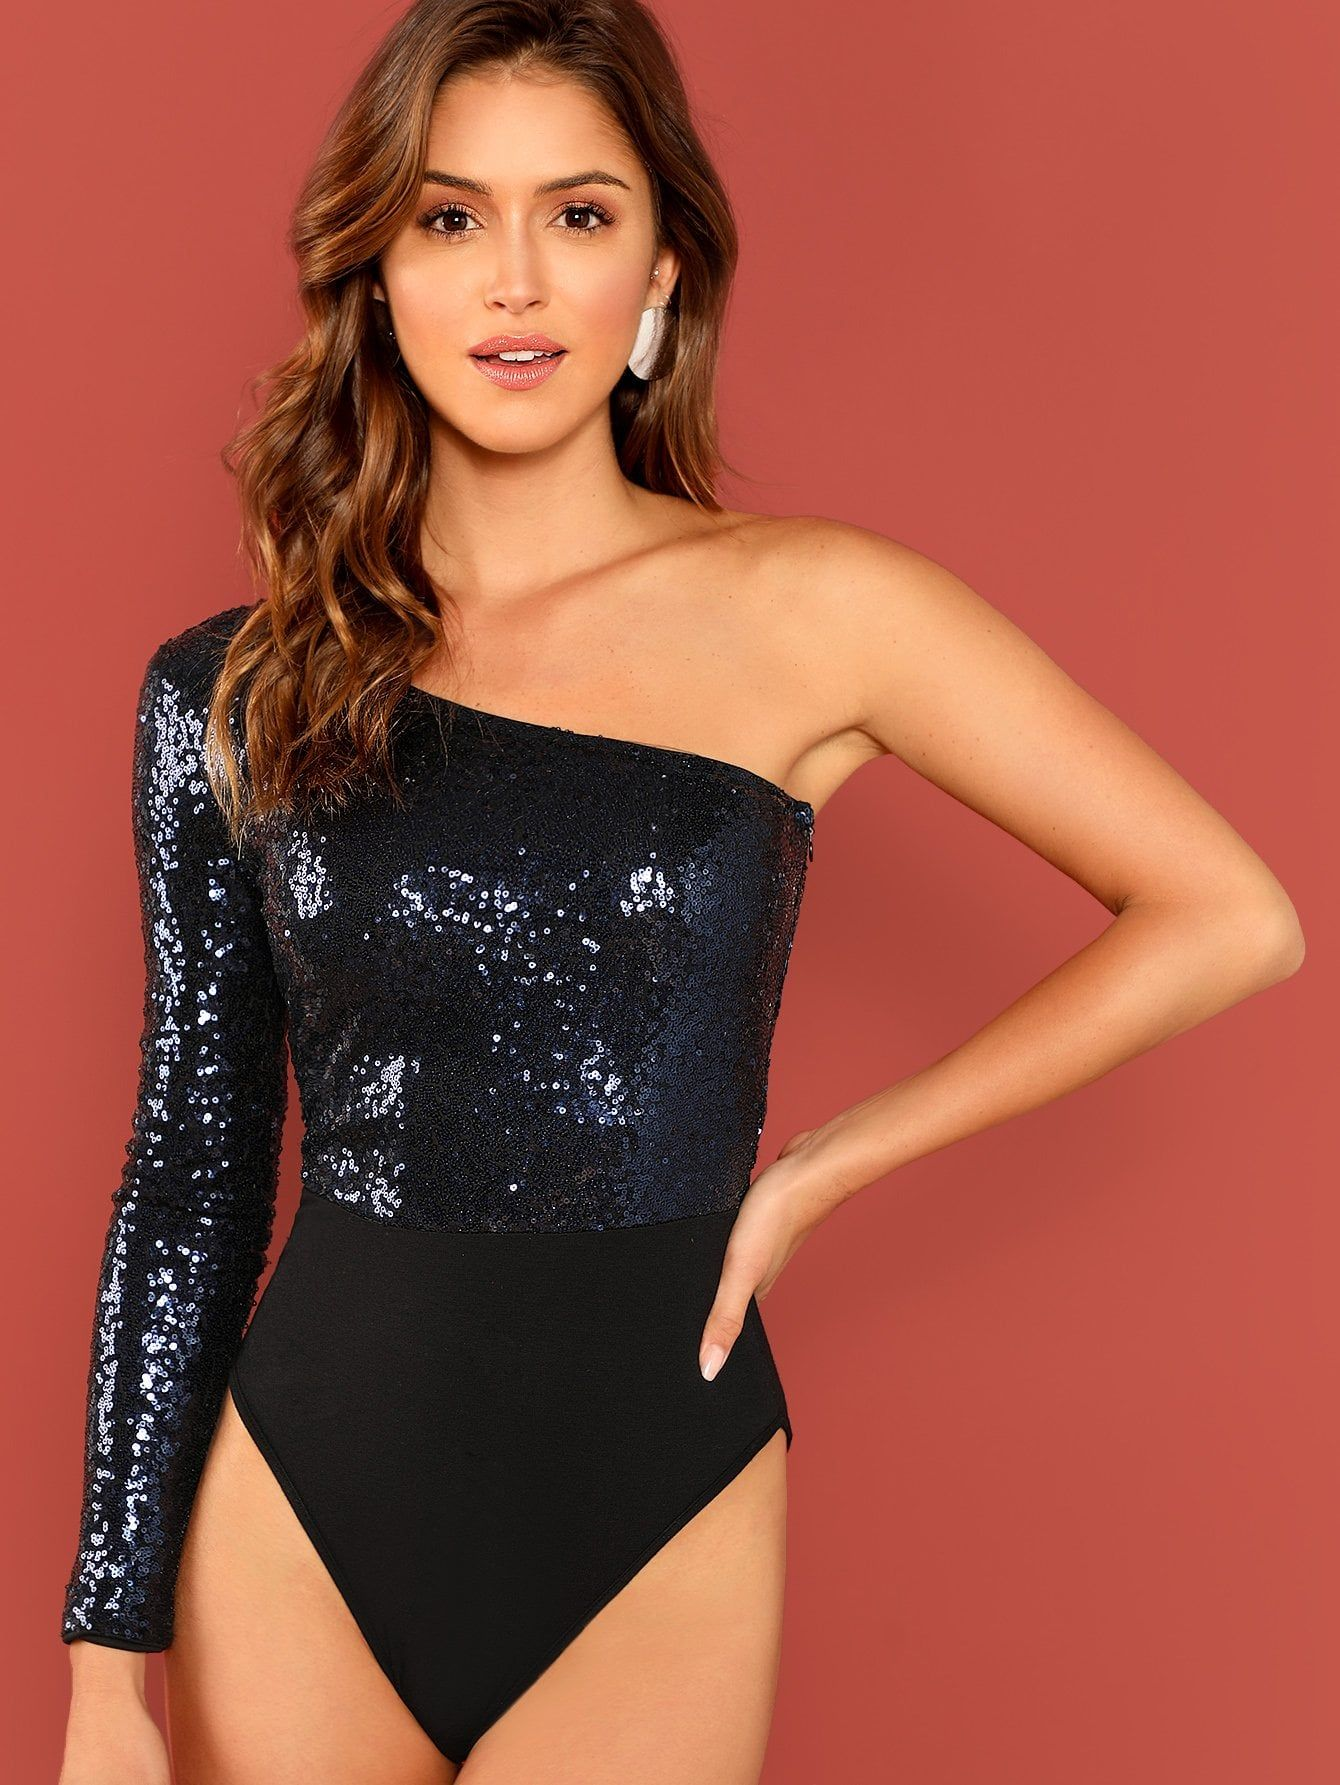 Pin on Bodysuits